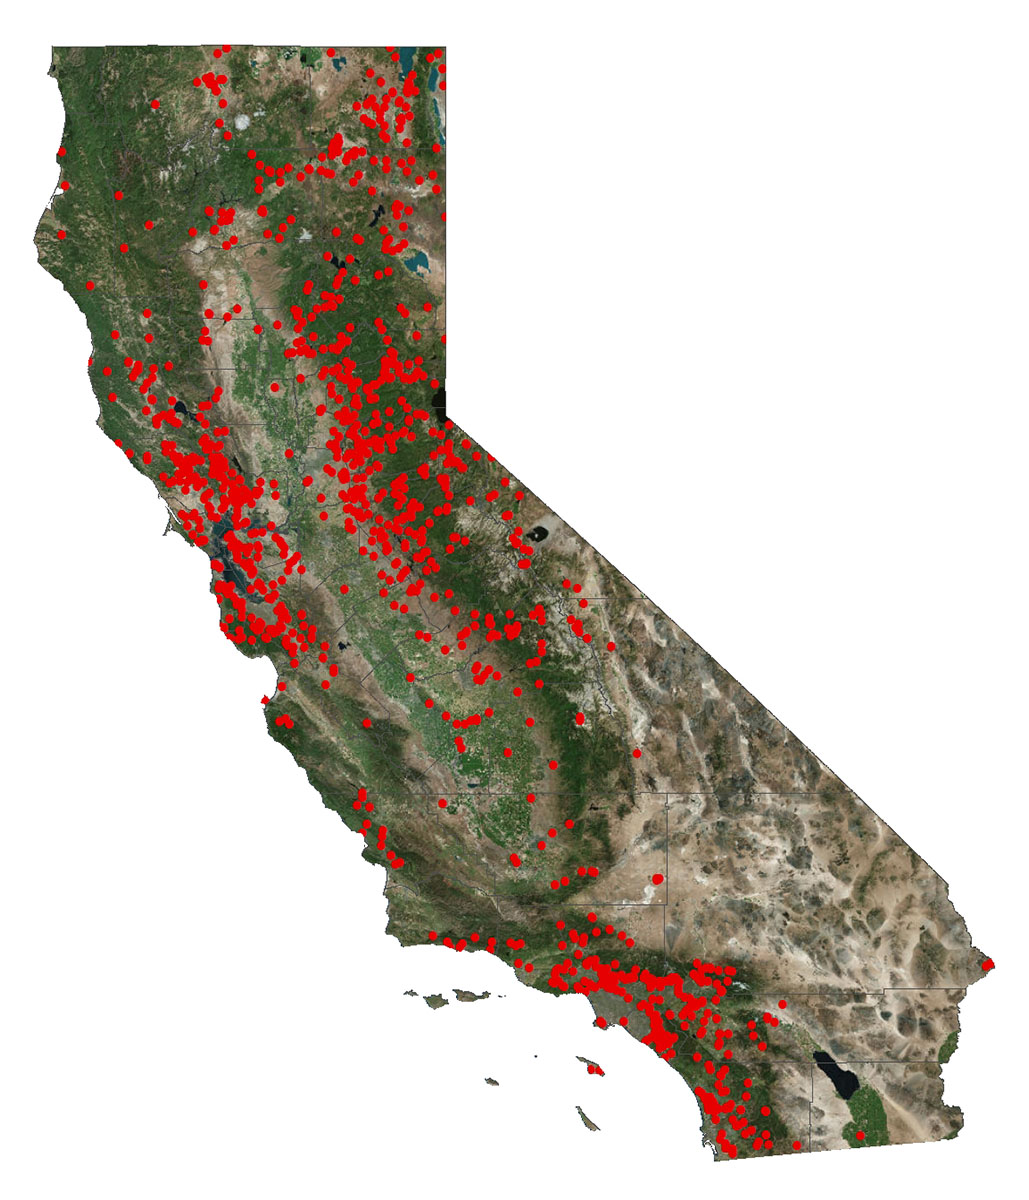 A map of the State of California with red dots marking the location of jurisdictional dams. For additional information, call 916-565-7868